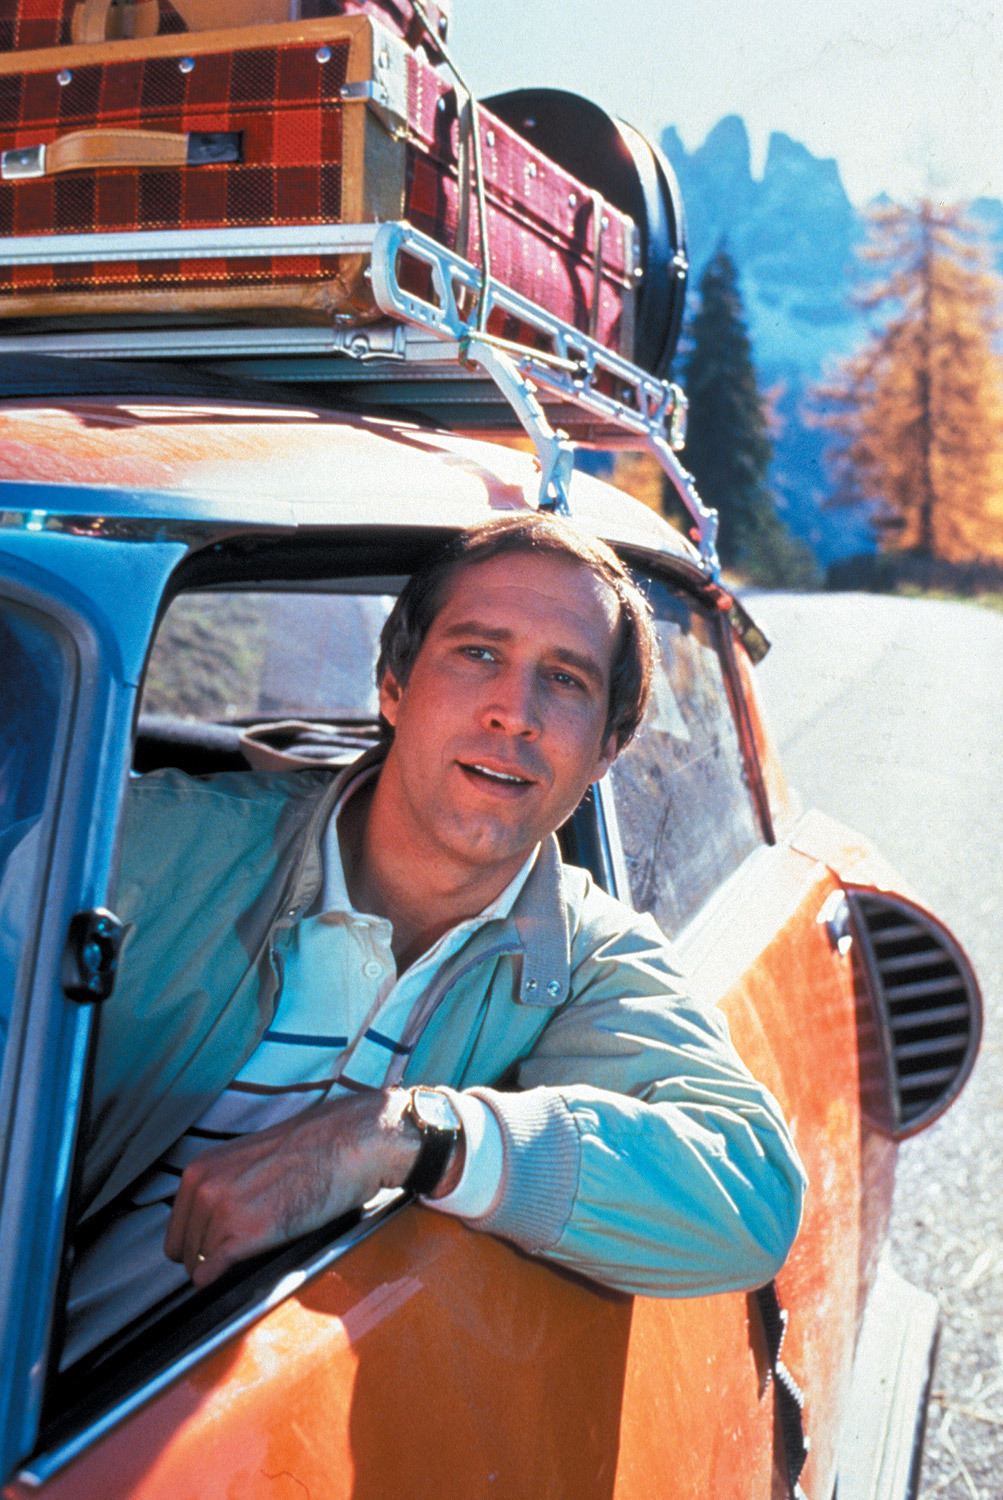 He Even Directed the Very First National Lampoon's Vacation (1983)